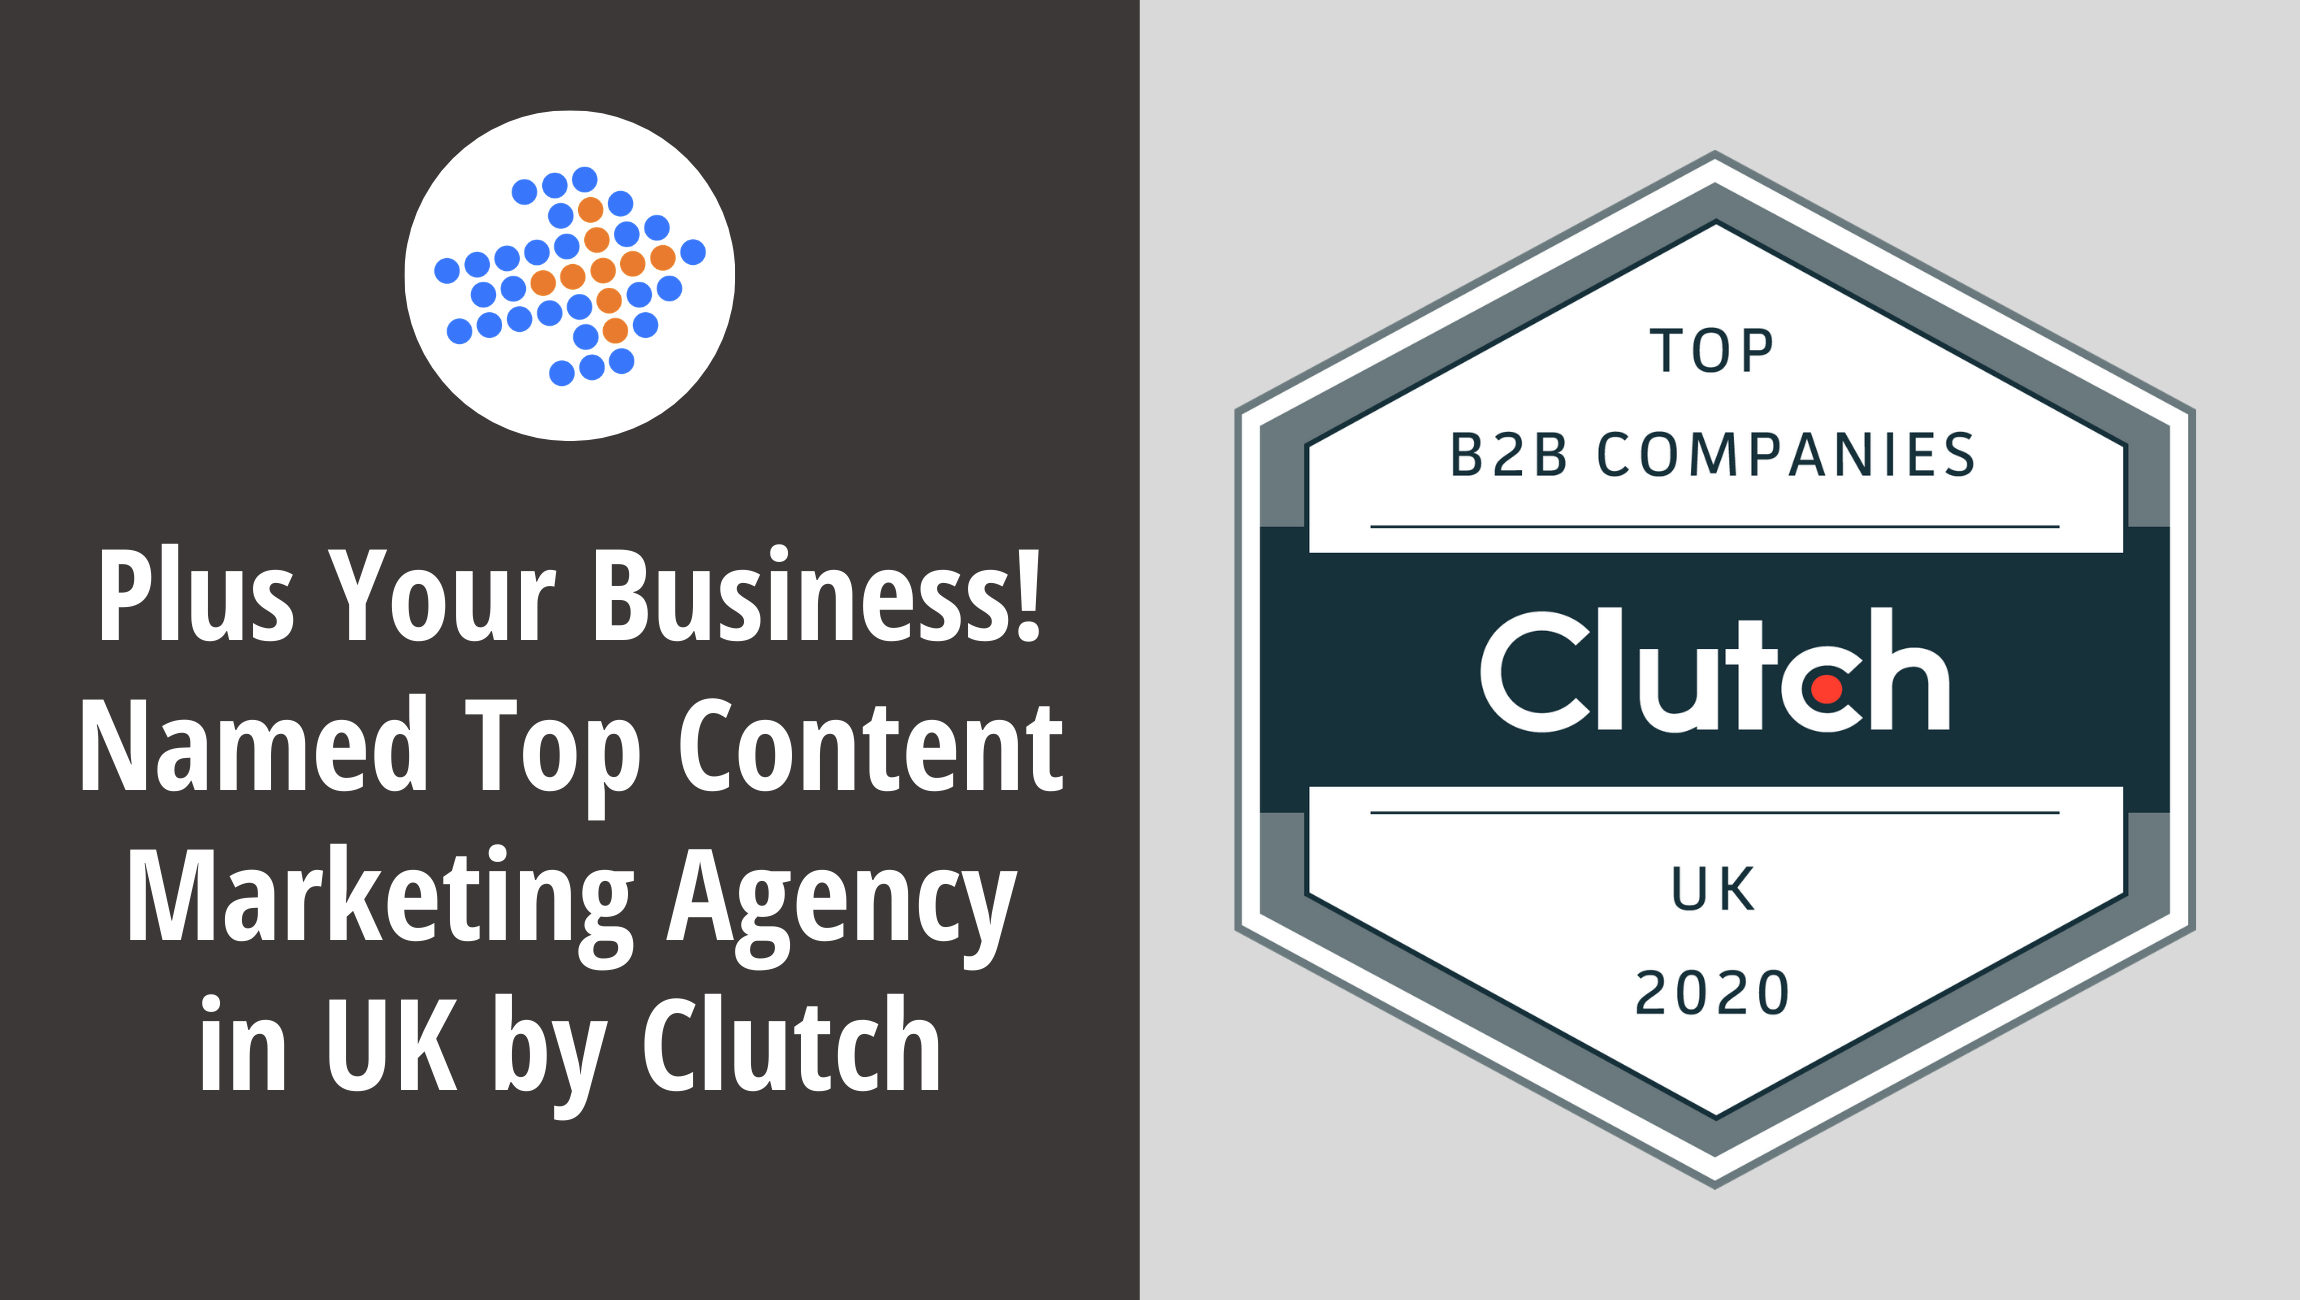 Plus Your Business! Named Top Content Marketing Agency in UK by Clutch